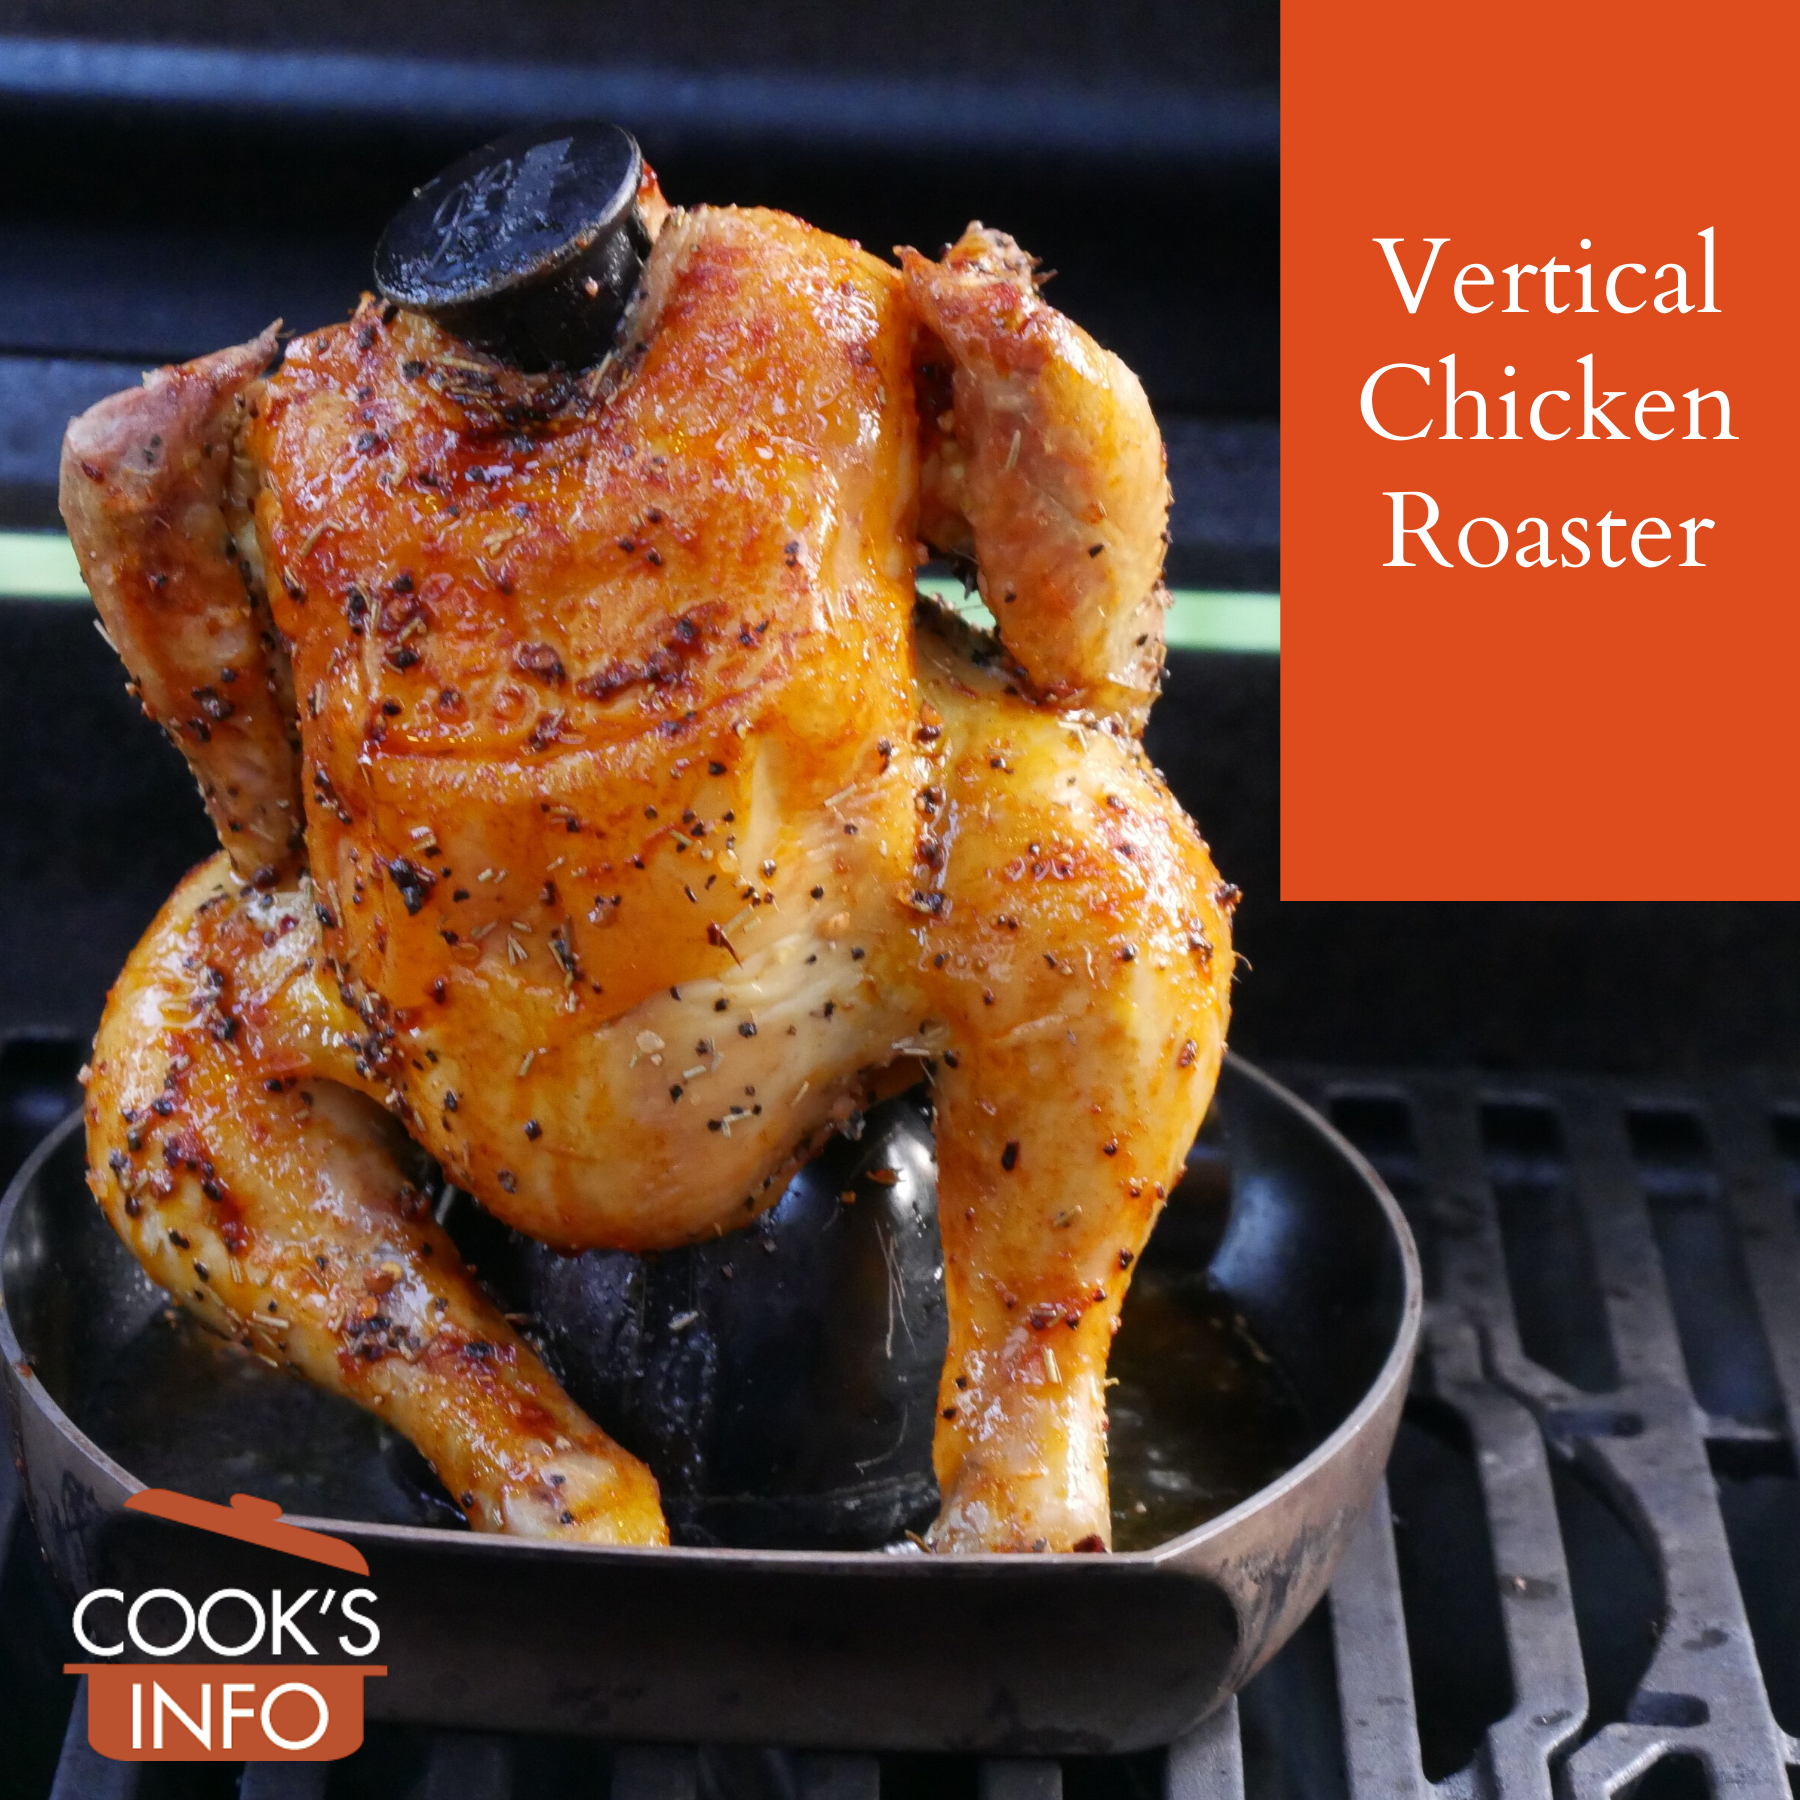 Vertical roasted chicken